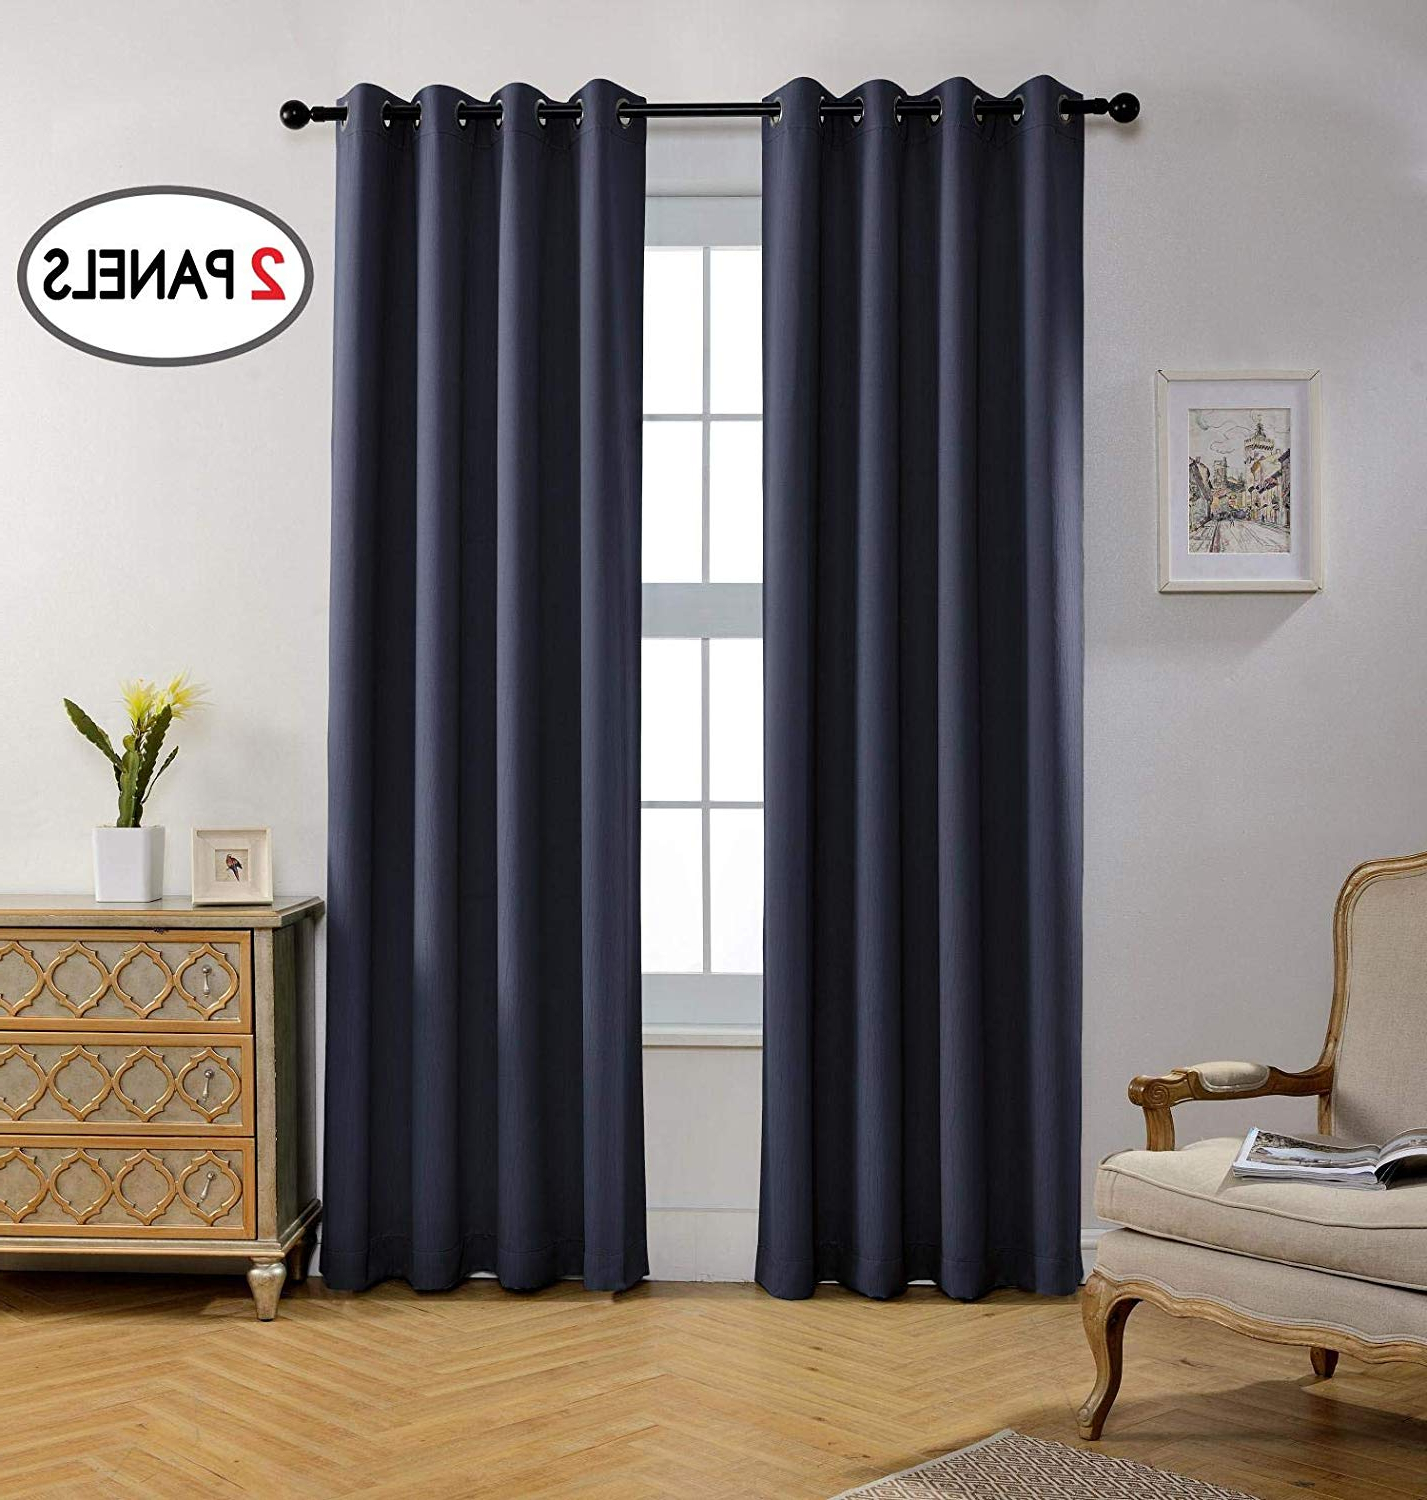 Miuco Blackout Curtains Room Darkening Textured Grommet Window Curtains 2 Panels Office 52x95 Inch Long Navy Blue In Well Liked Porch & Den Lorentz Silver 24 Inch Tier Pairs (View 20 of 20)